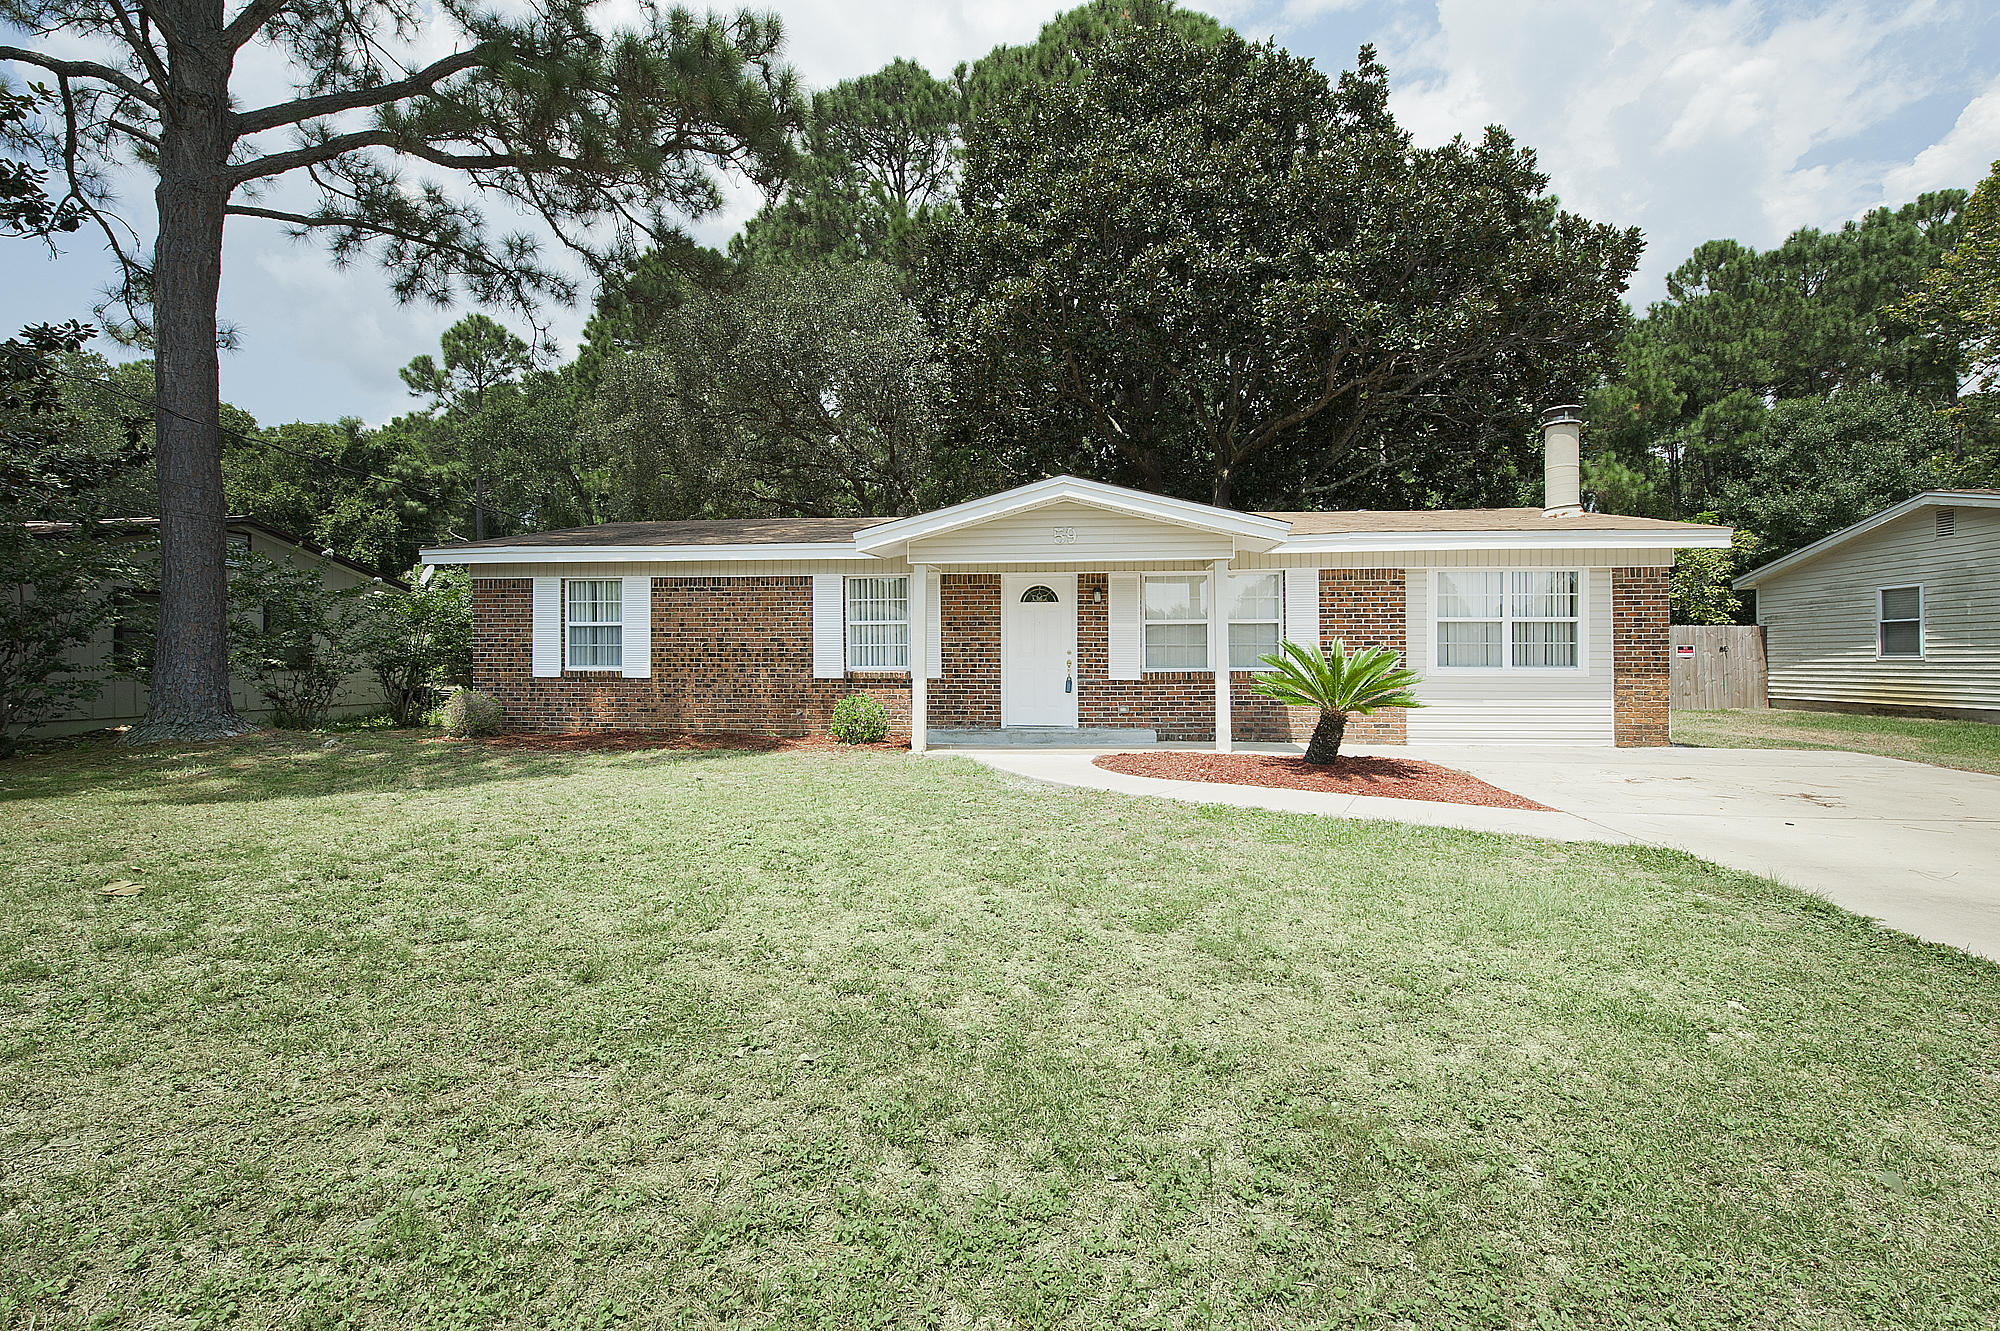 Photo of home for sale at 59 Mary Esther, Mary Esther FL